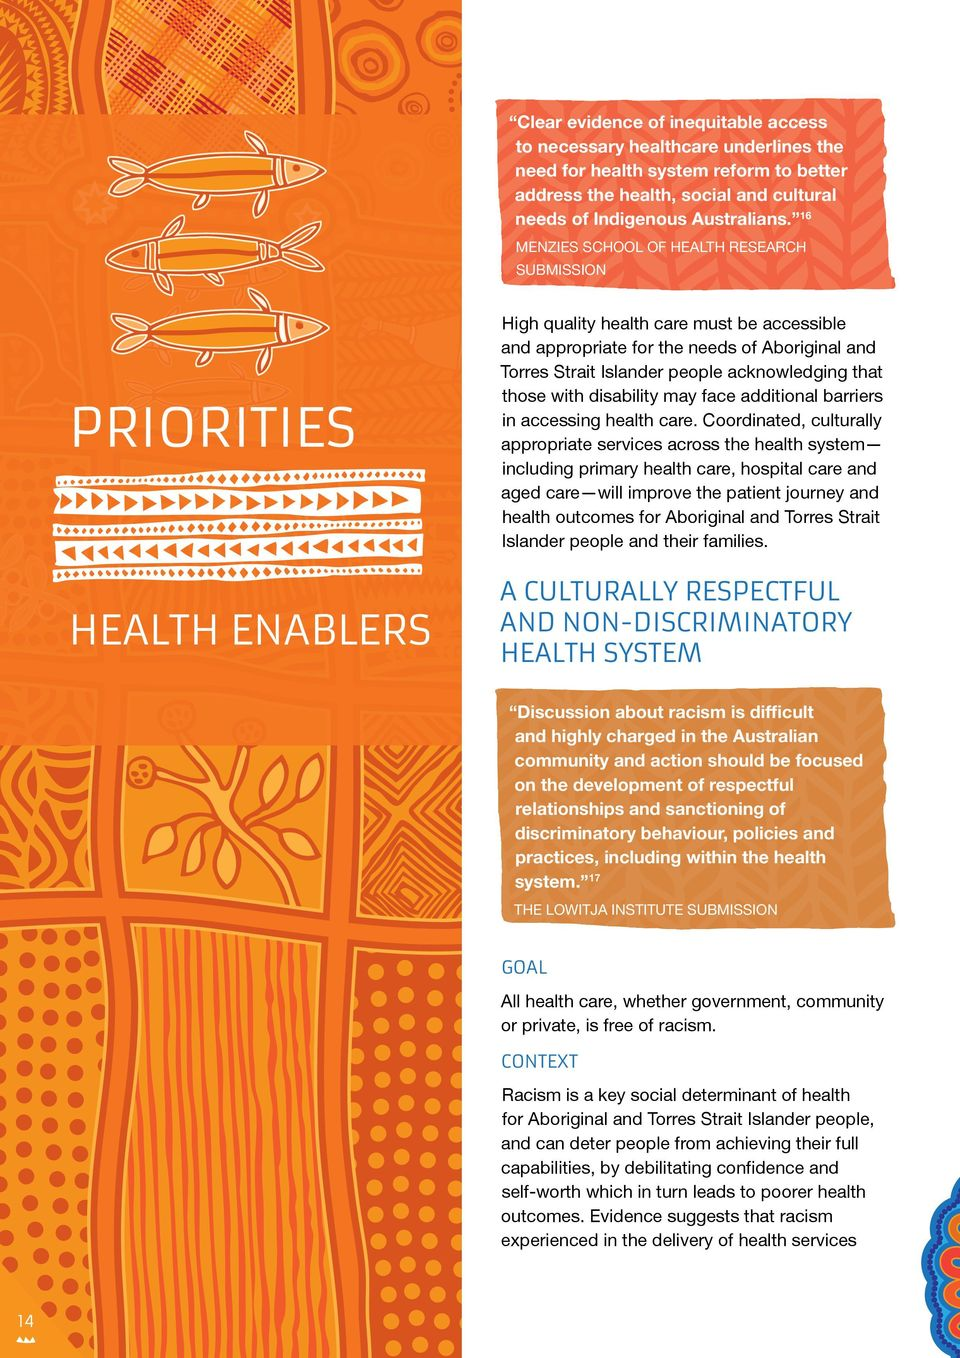 acknowledging that those with disability may face additional barriers in accessing health care.